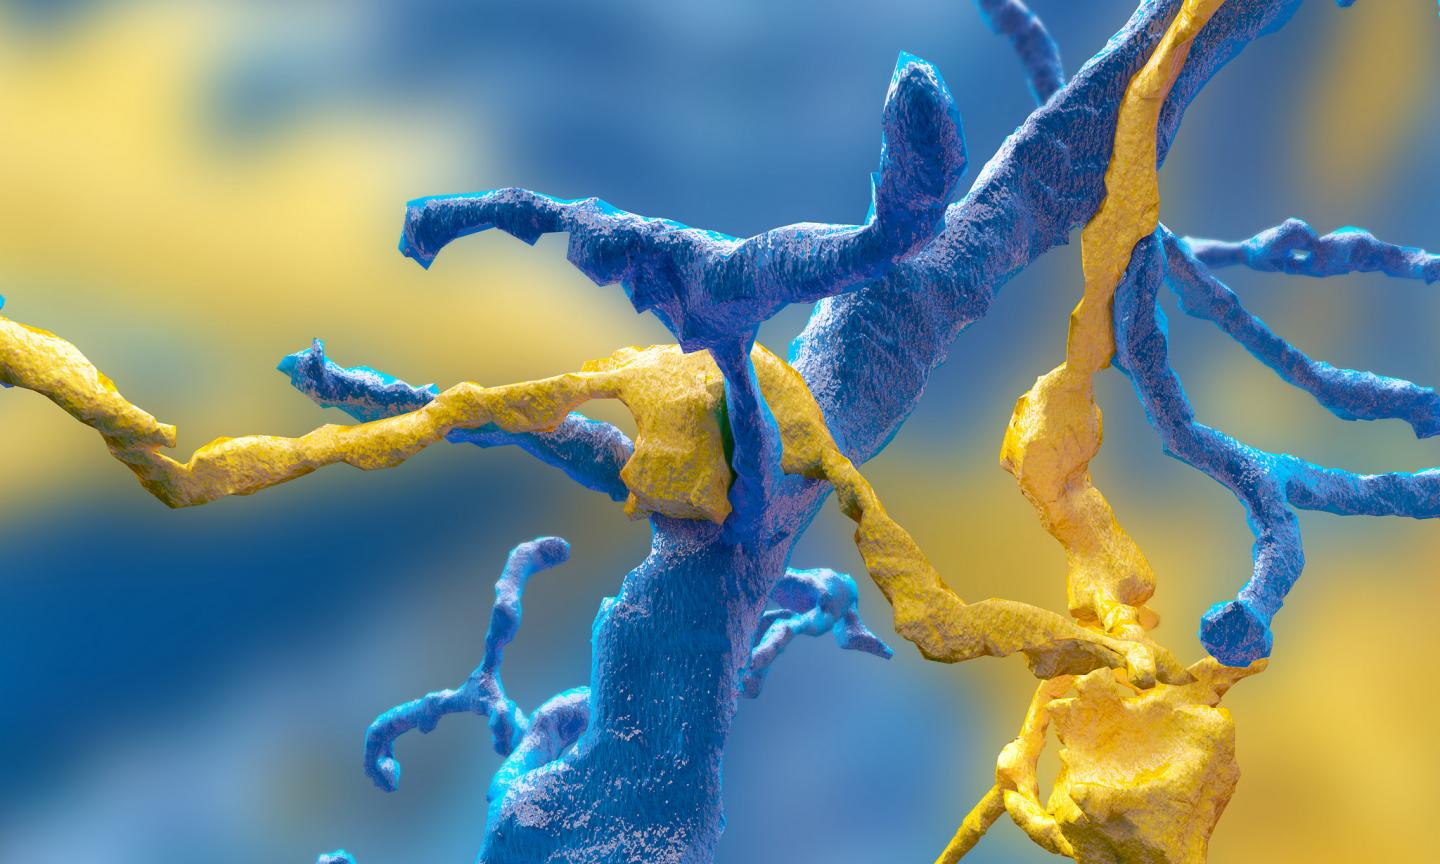 By turning a time-intensive research problem into an interactive game, Princeton neuroscientist Sebastian Seung has built an unprecedented data set of neurons, which he is now turning over to the public via the Eyewire Museum. Eyewire gamers mapped this synapse between a ganglion neuron (blue) and a starburst amacrine cell (yellow). / Credit: Image by Alex Norton, Eyewire